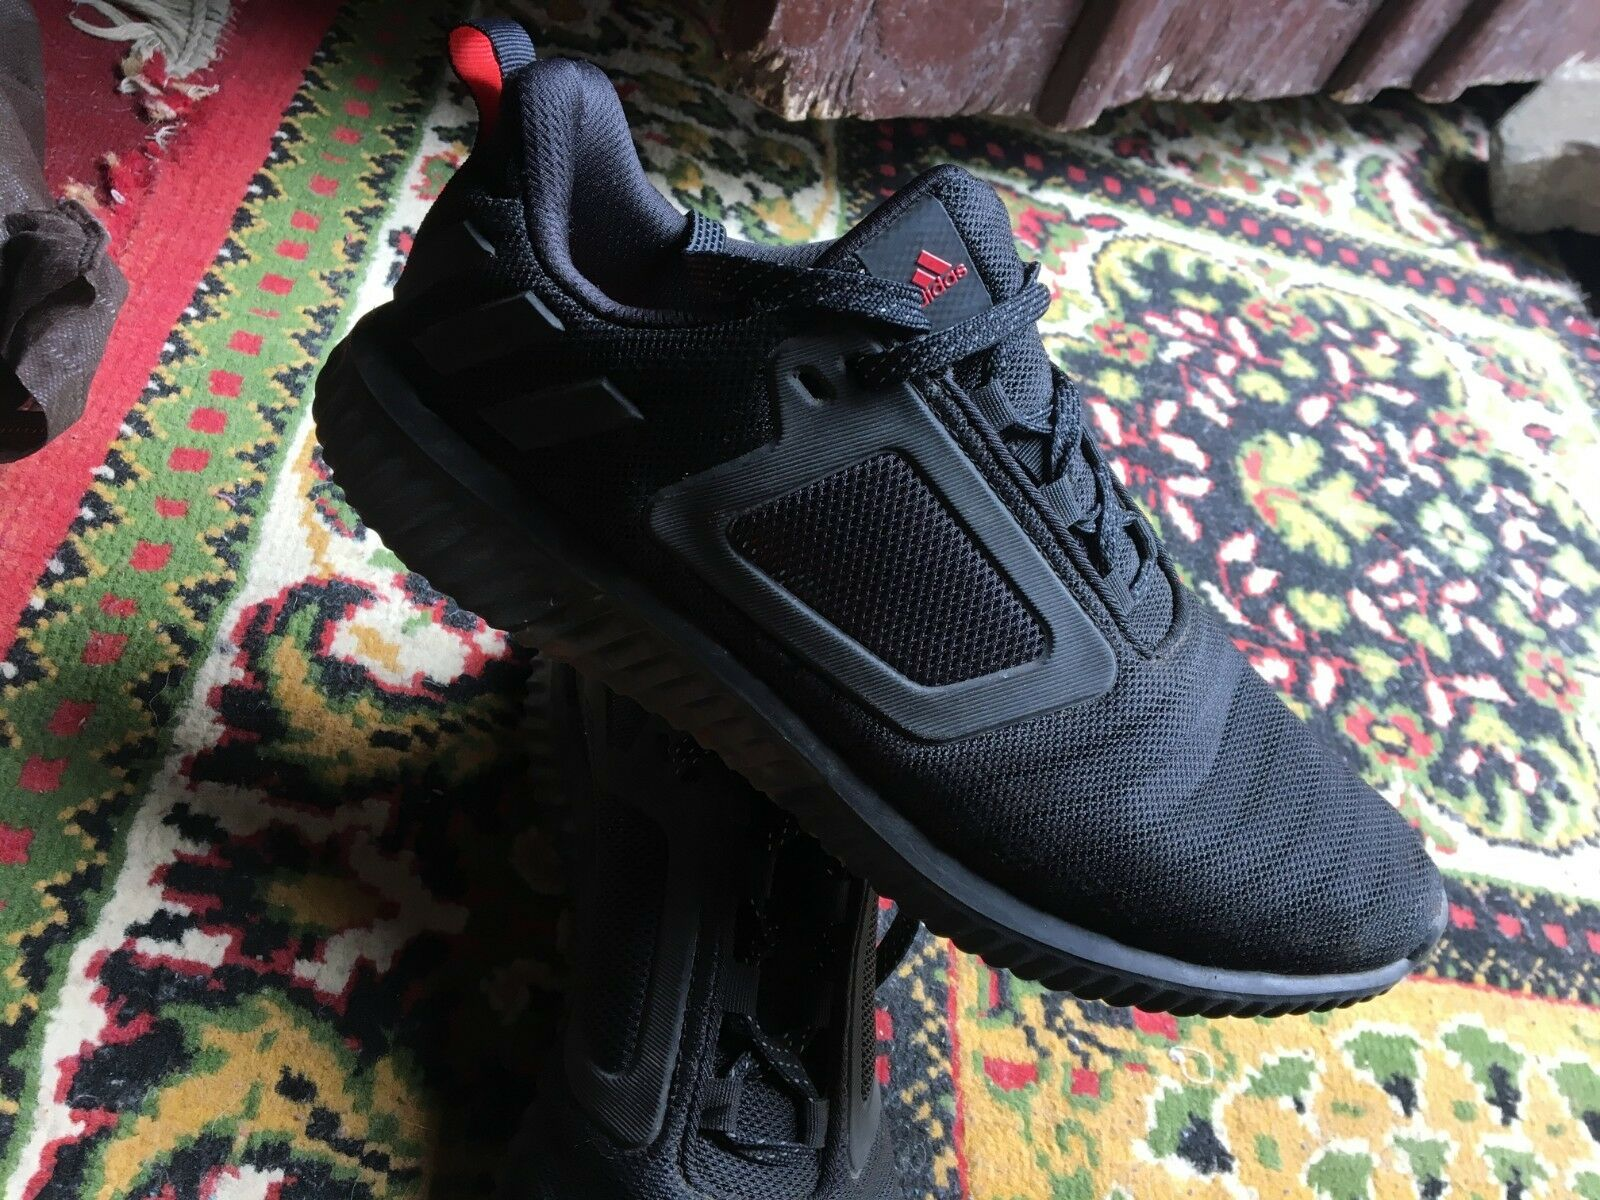 ADIDAS CLIMACOOL TRAINERS 2017 Black - Fast Shipping